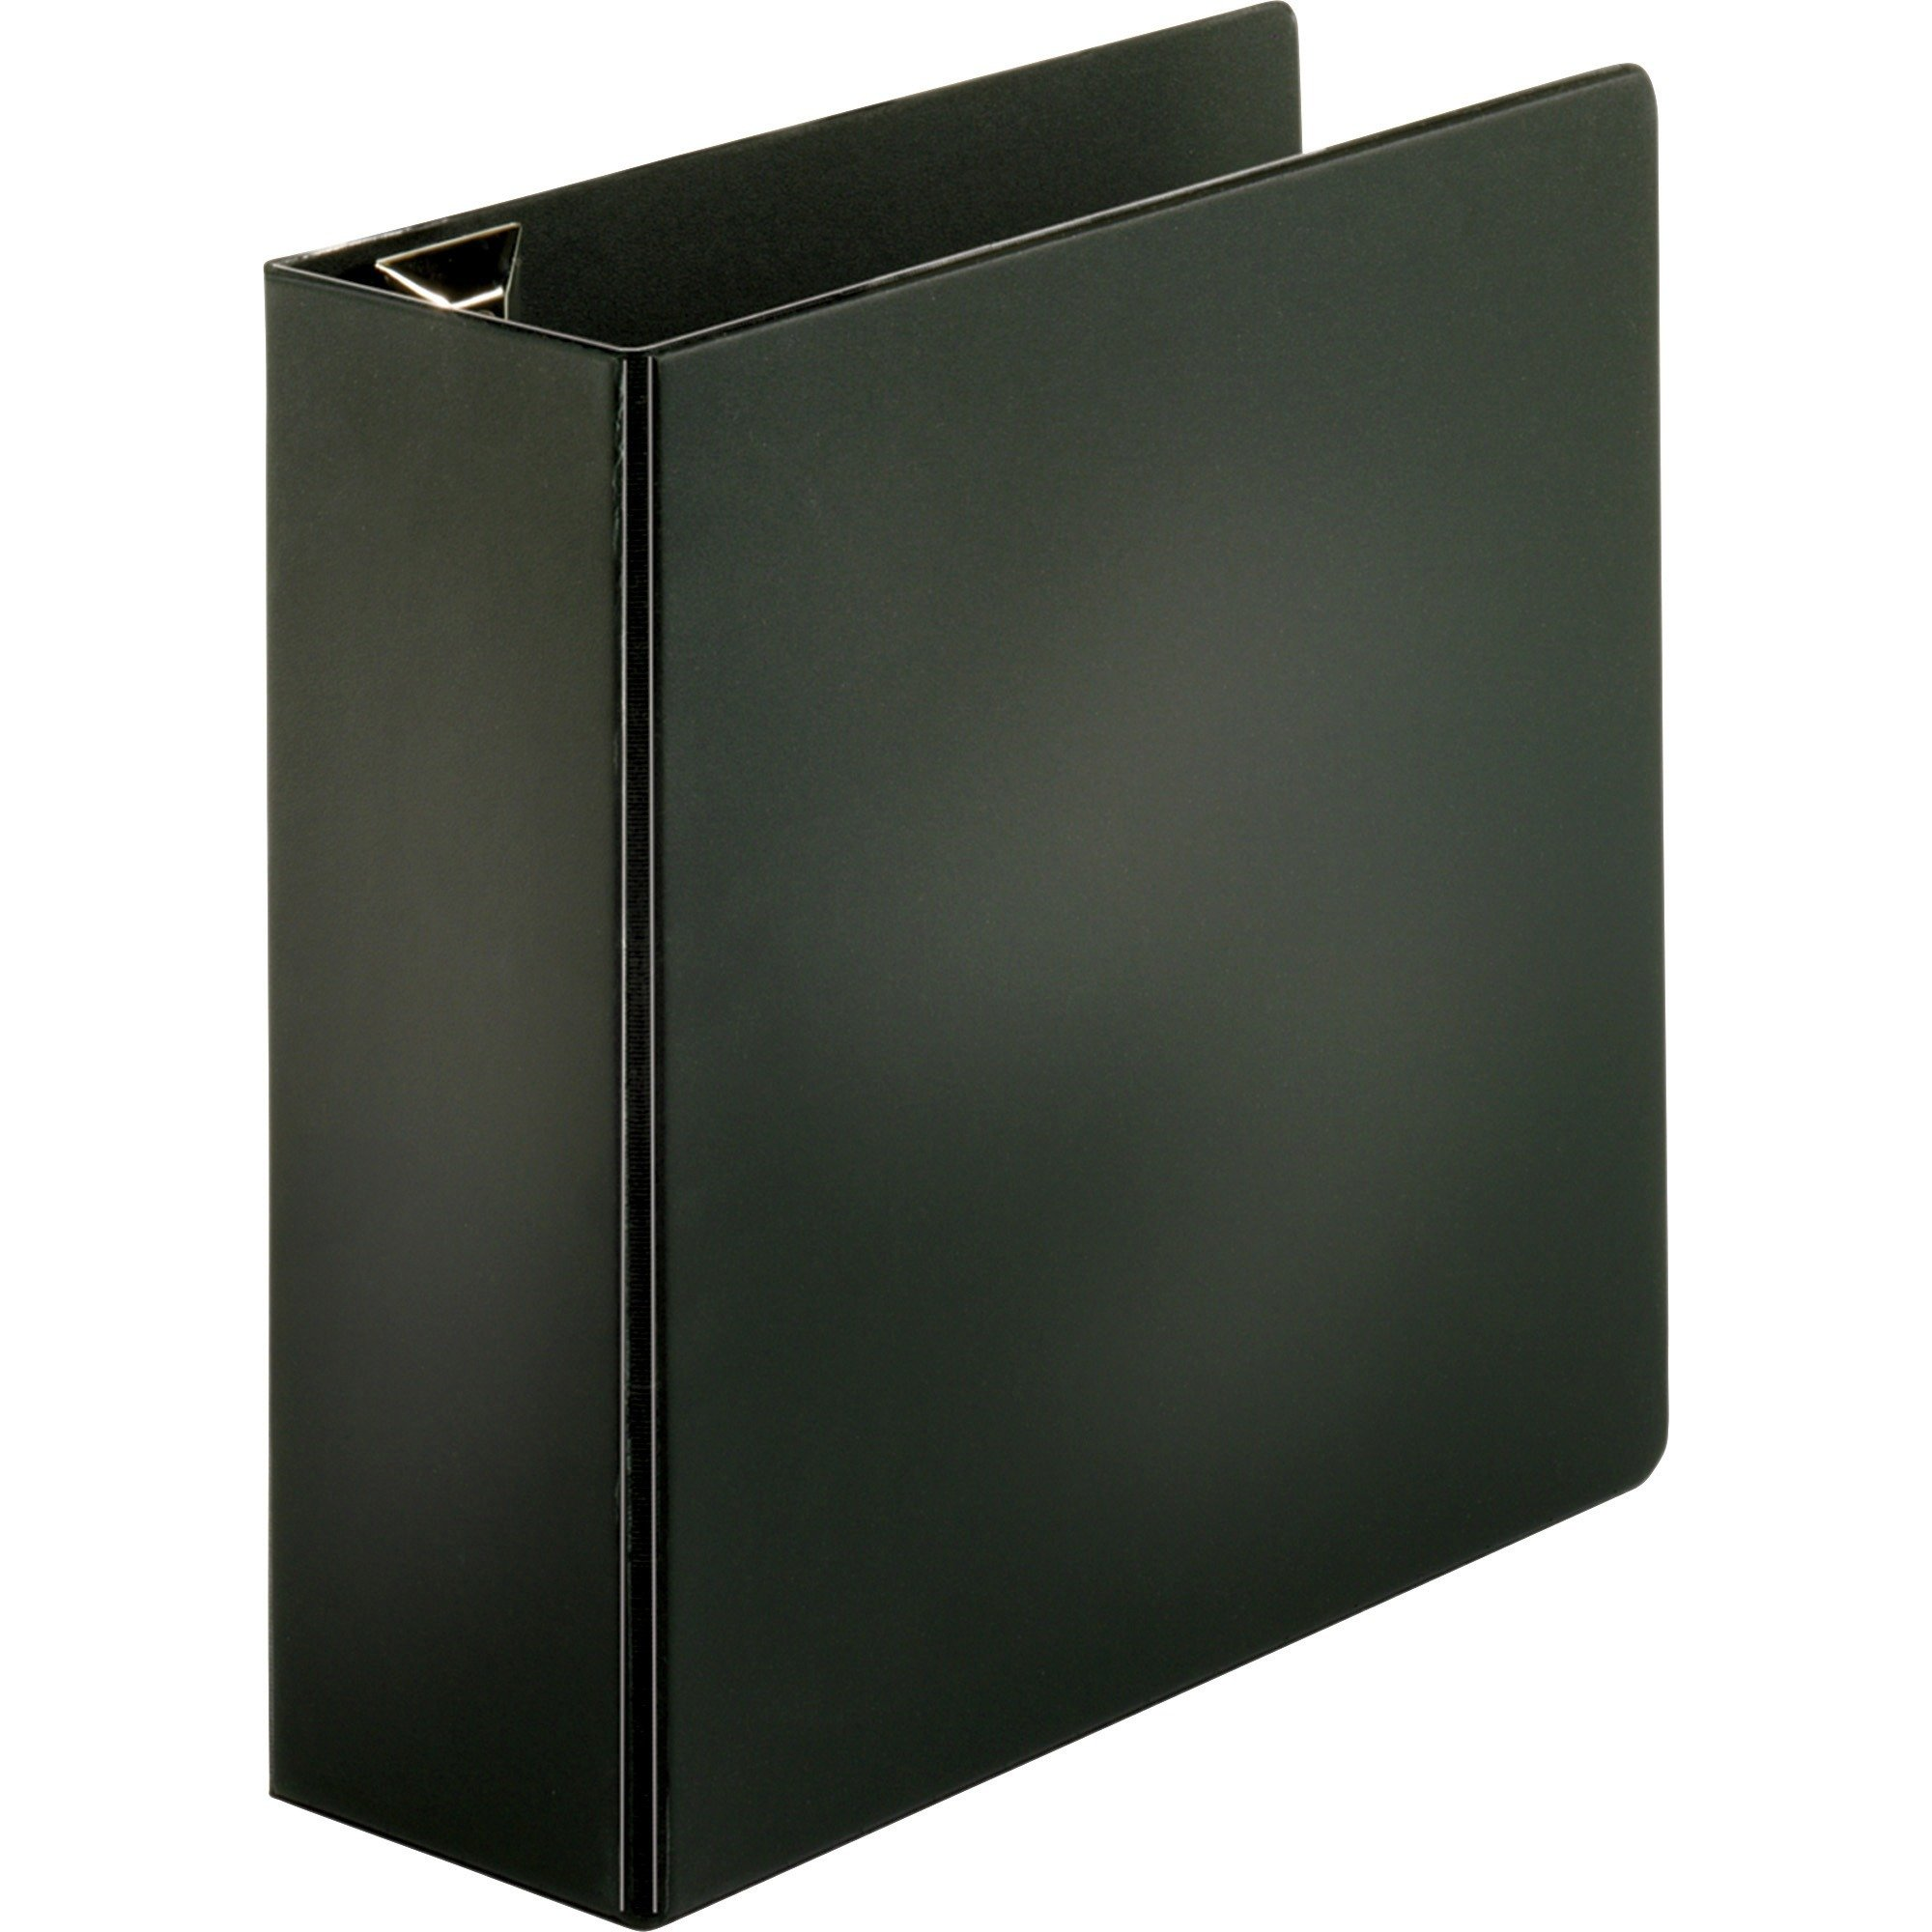 Sparco Slant-D Ring Binder, with Sheet Lifter, 4 Inches Cap, 11 x 8-1/2 Inches, BK (SPR26971)